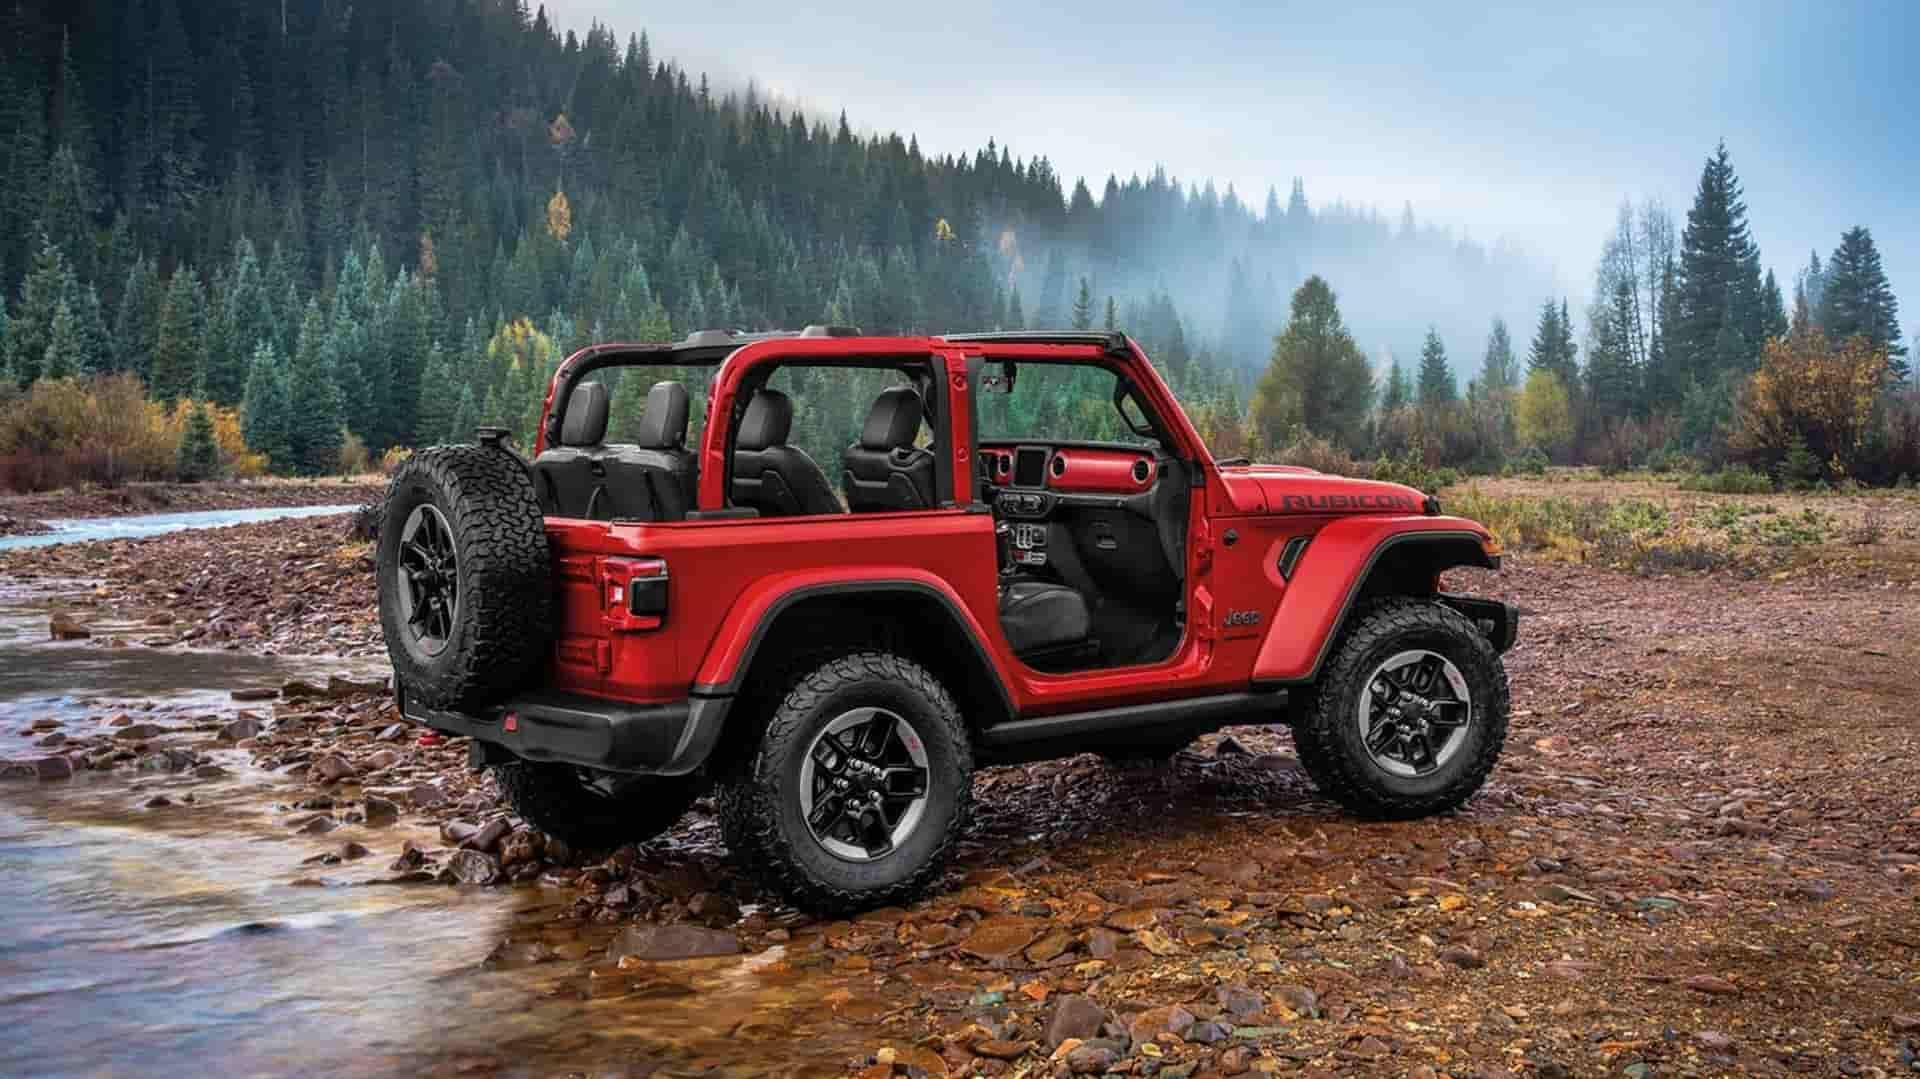 Learn about the 2020 Jeep Wrangler near Golden CO